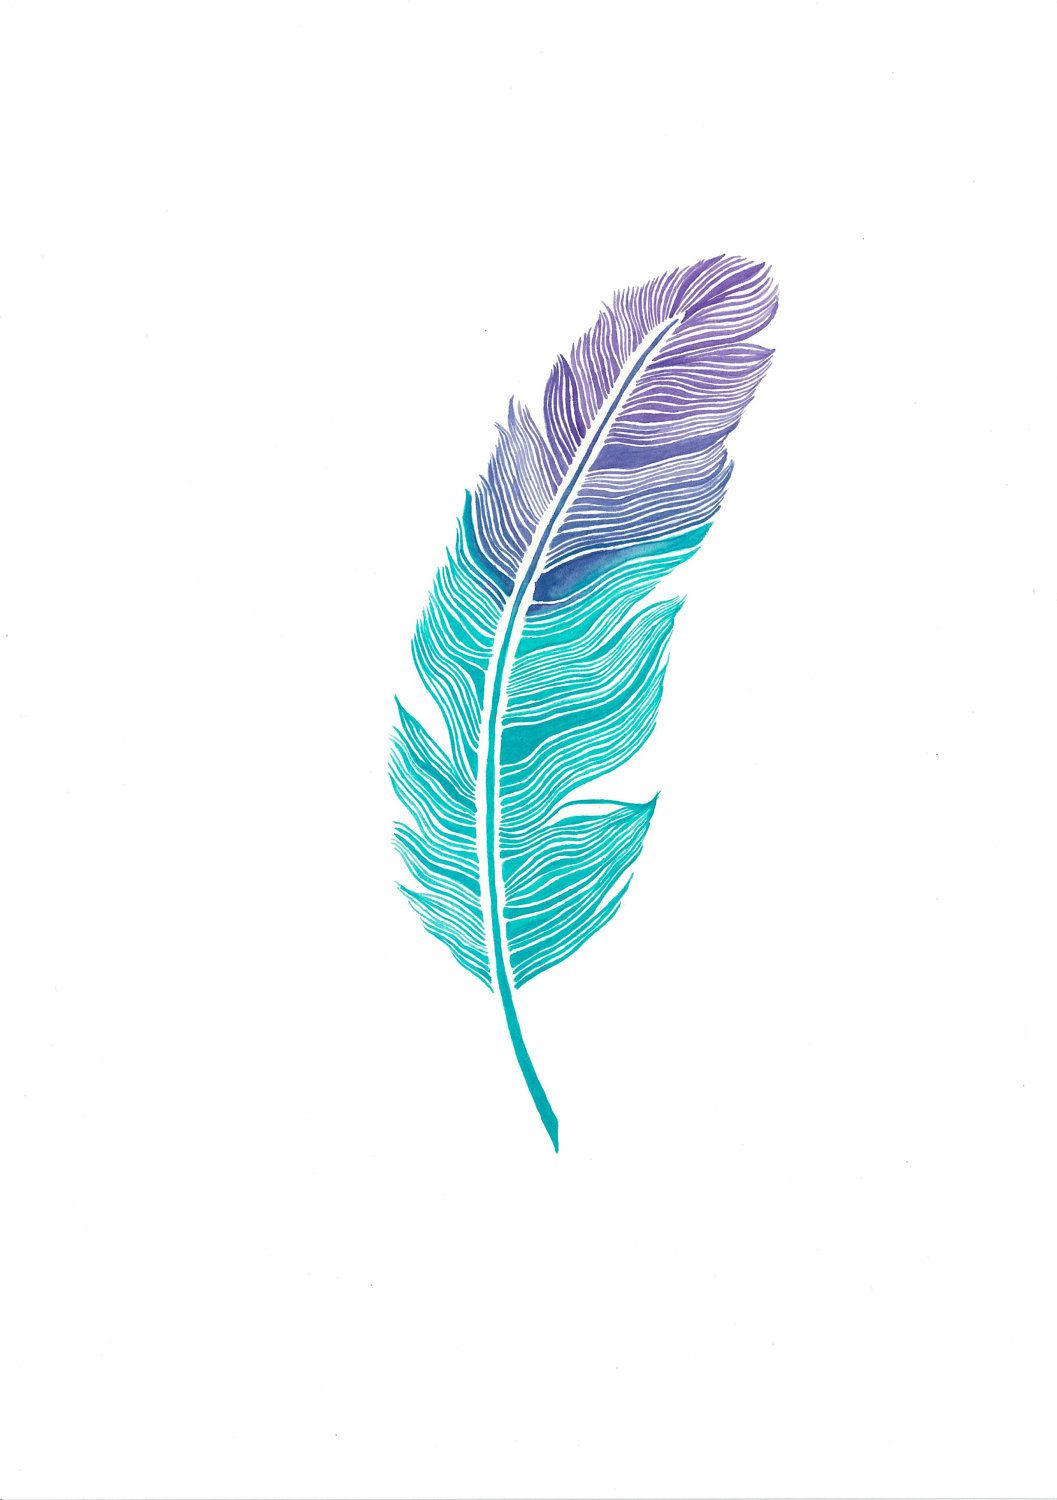 watercolor feather print 03 11x16 3500 via etsy